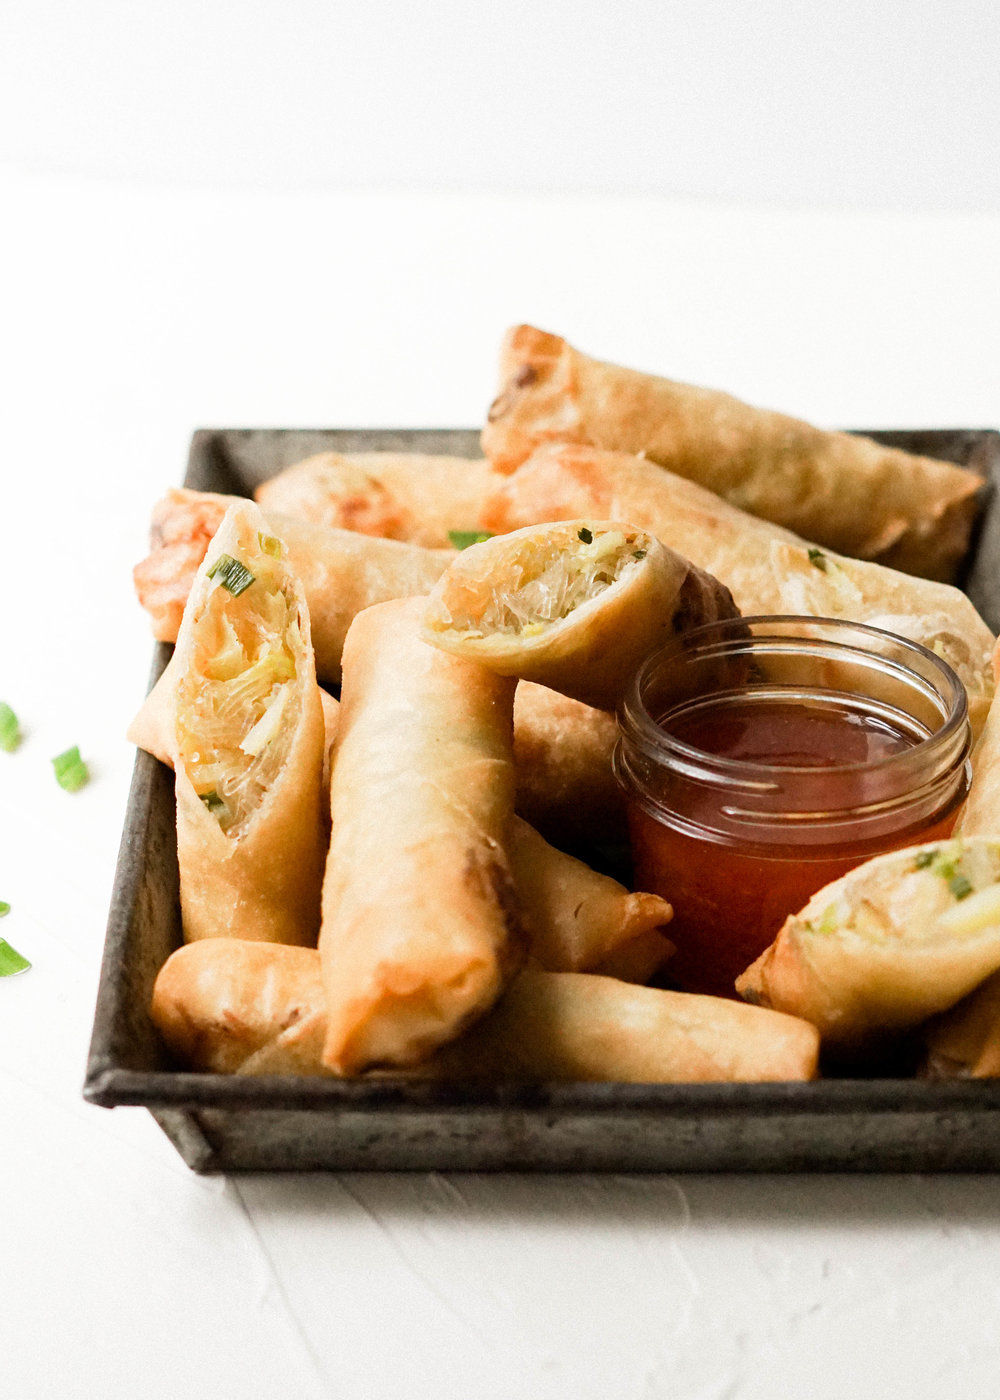 Chicken and Cabbage Spring Rolls // https://eatchofood.com/blog/2019/1/6/chicken-and-cabbage-spring-rolls